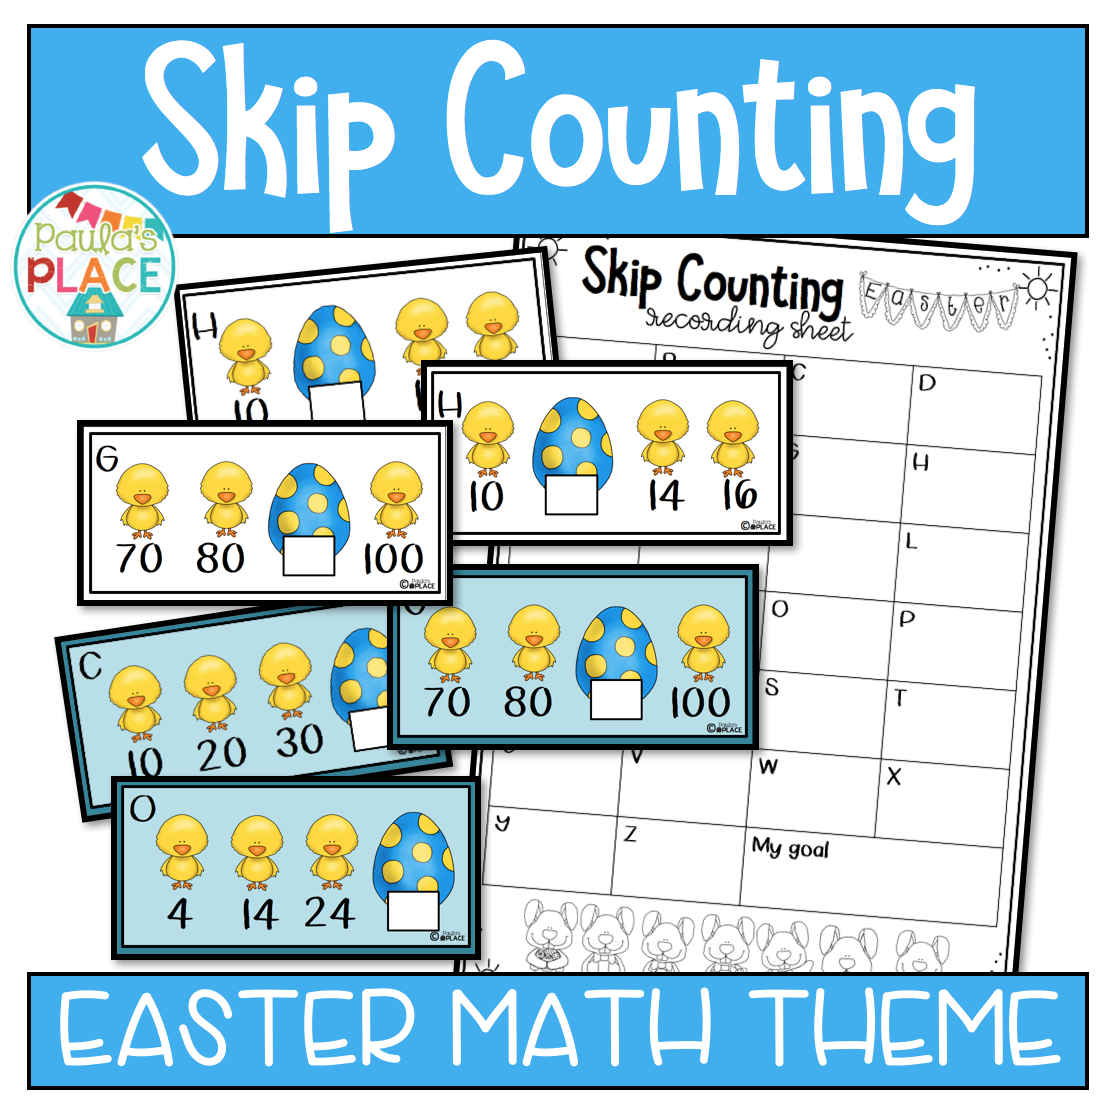 Paulas Place Easter Math Centres